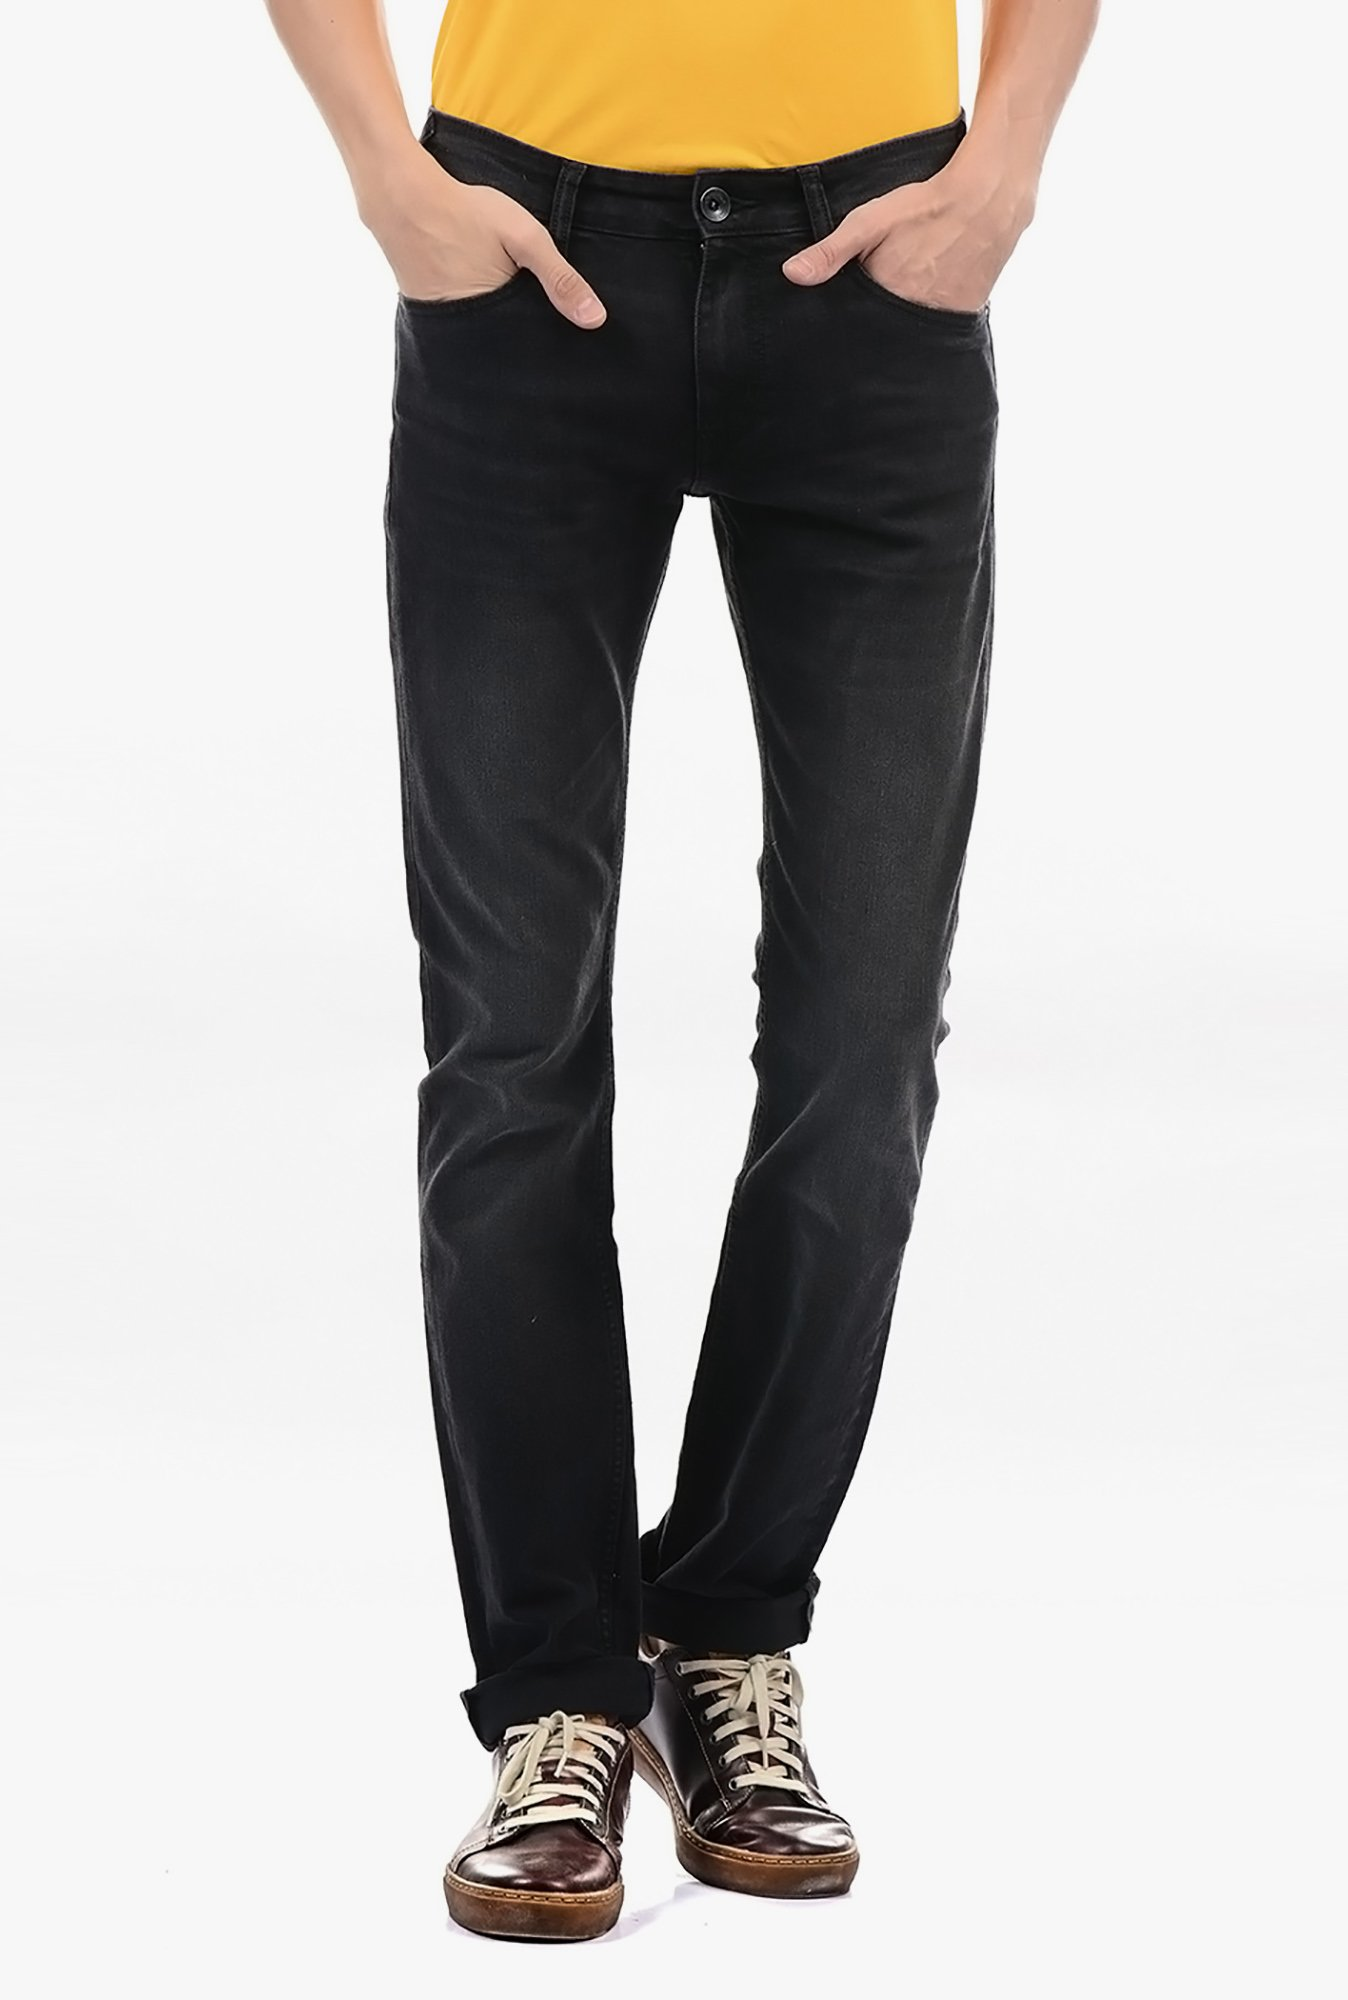 light black jeans - HD 1348×2000